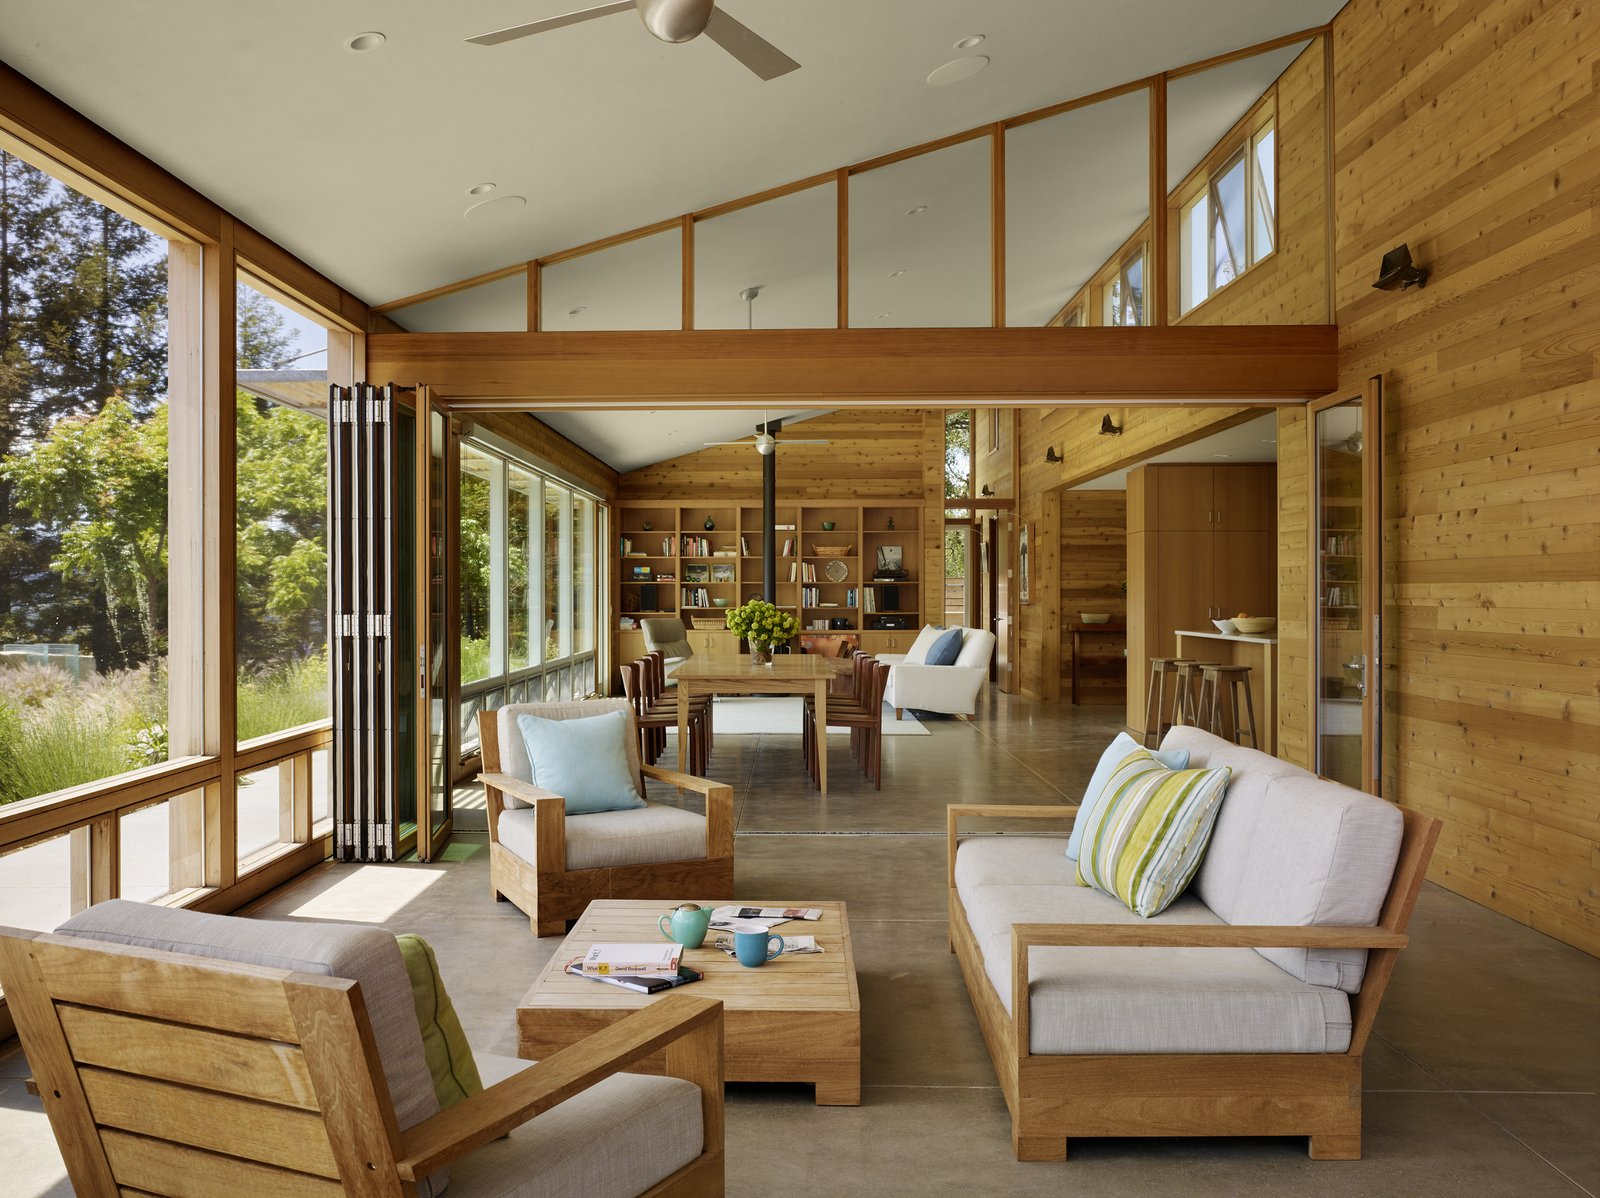 Living Room, Chair, Recessed Lighting, Sofa, Concrete Floor, and Coffee Tables #TurnbullGriffinHaesloop #interior #nanawall #screenedporch #diningroom #window  Cloverdale Residence by Turnbull Griffin Haesloop Architects